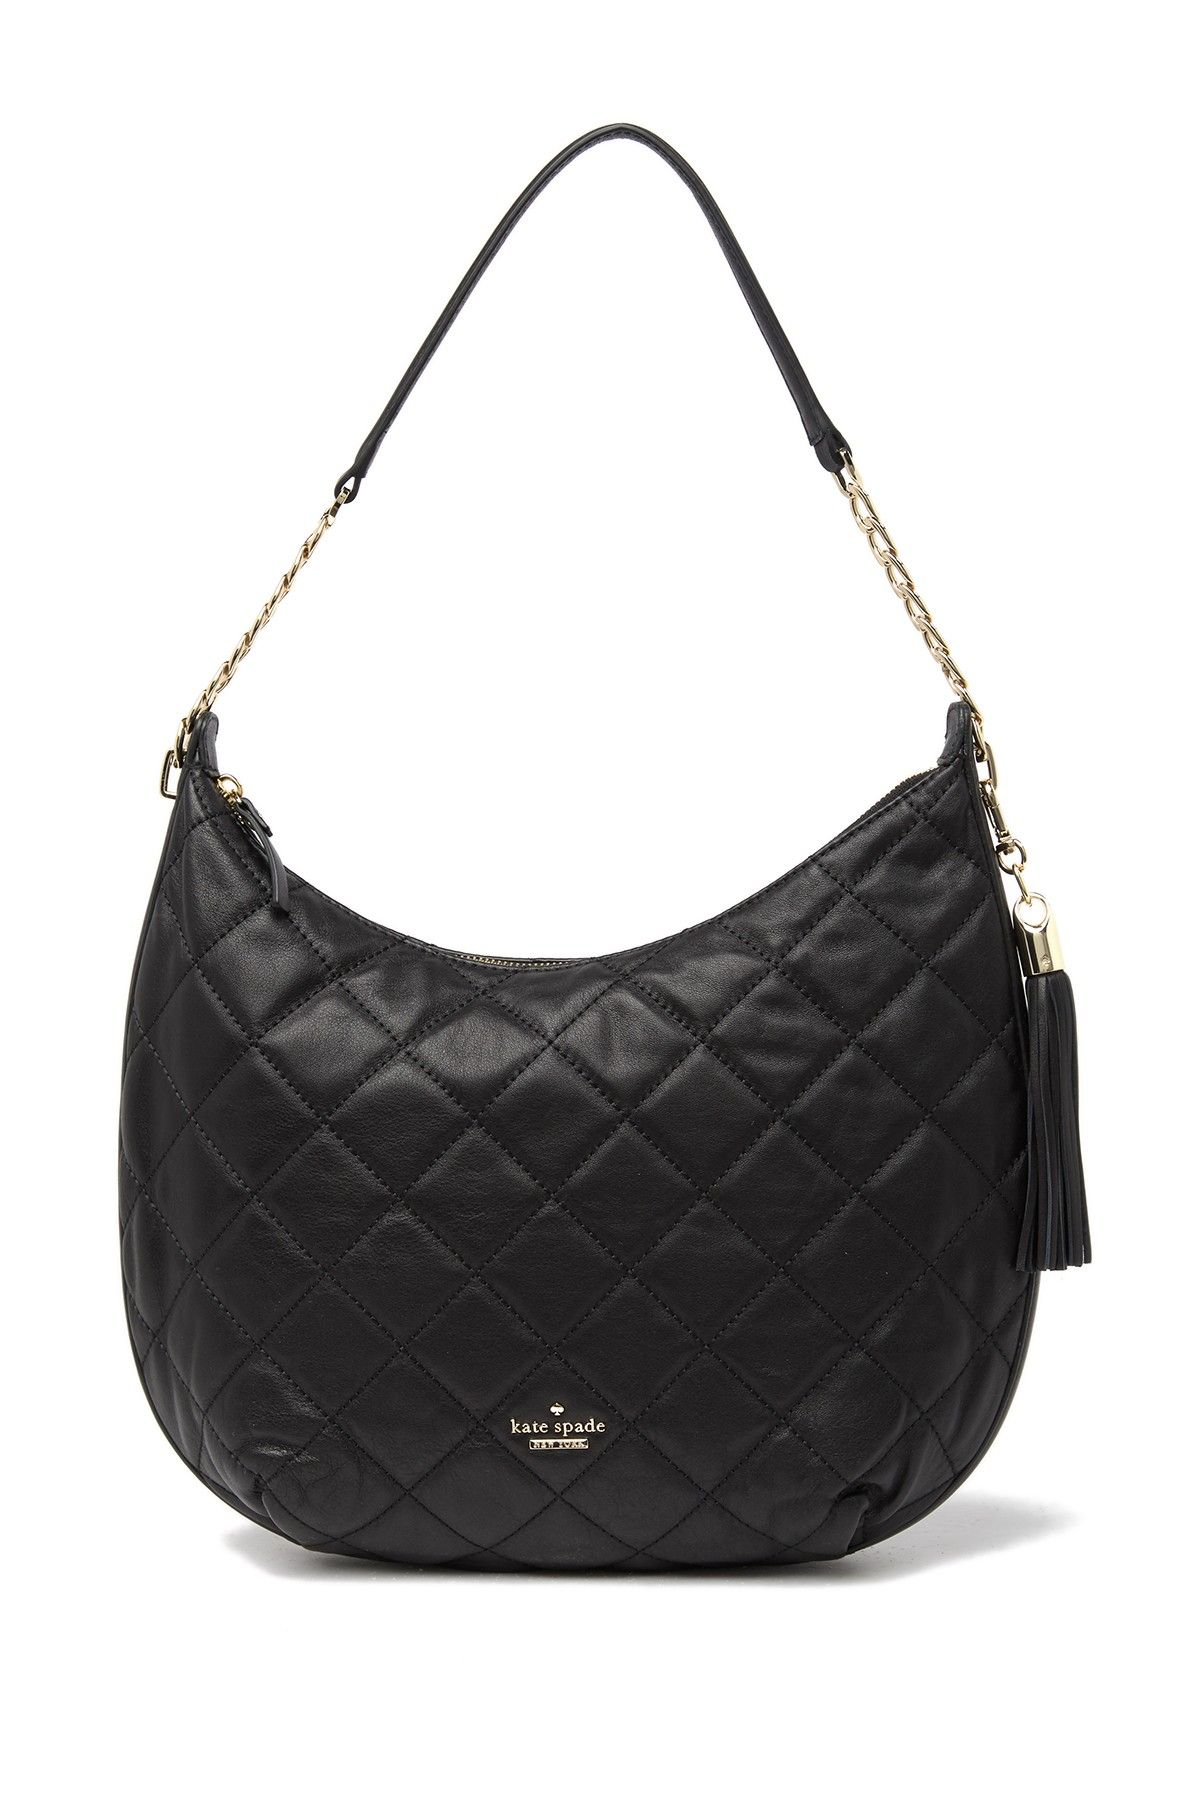 9629d05a566a kate spade new york - tamsin quilted leather shoulder bag is now 50% off. Free  Shipping on orders over  100.